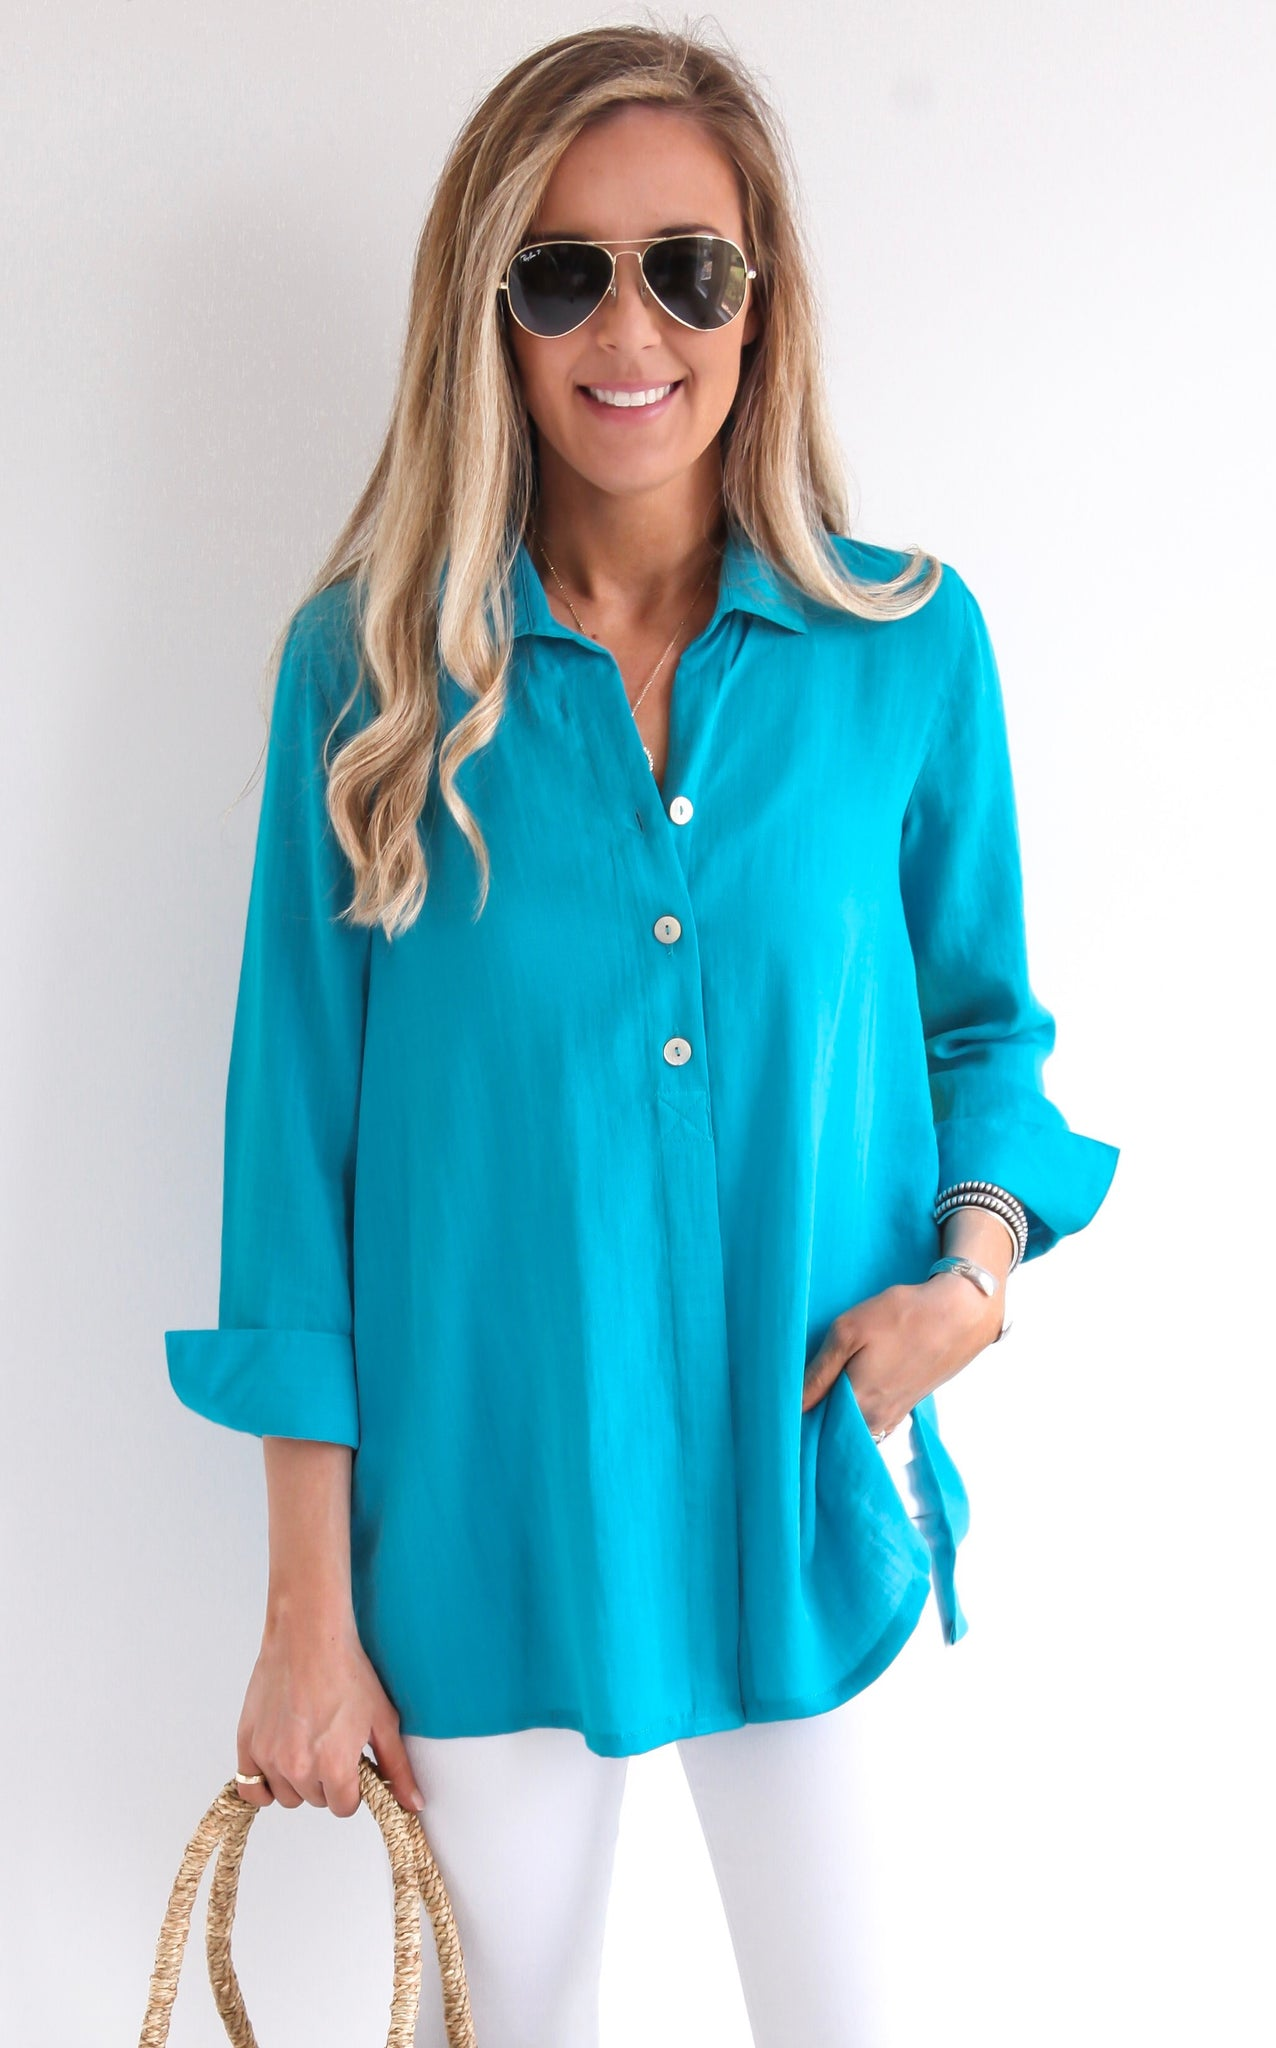 BUTTON BACK TOP - TEAL